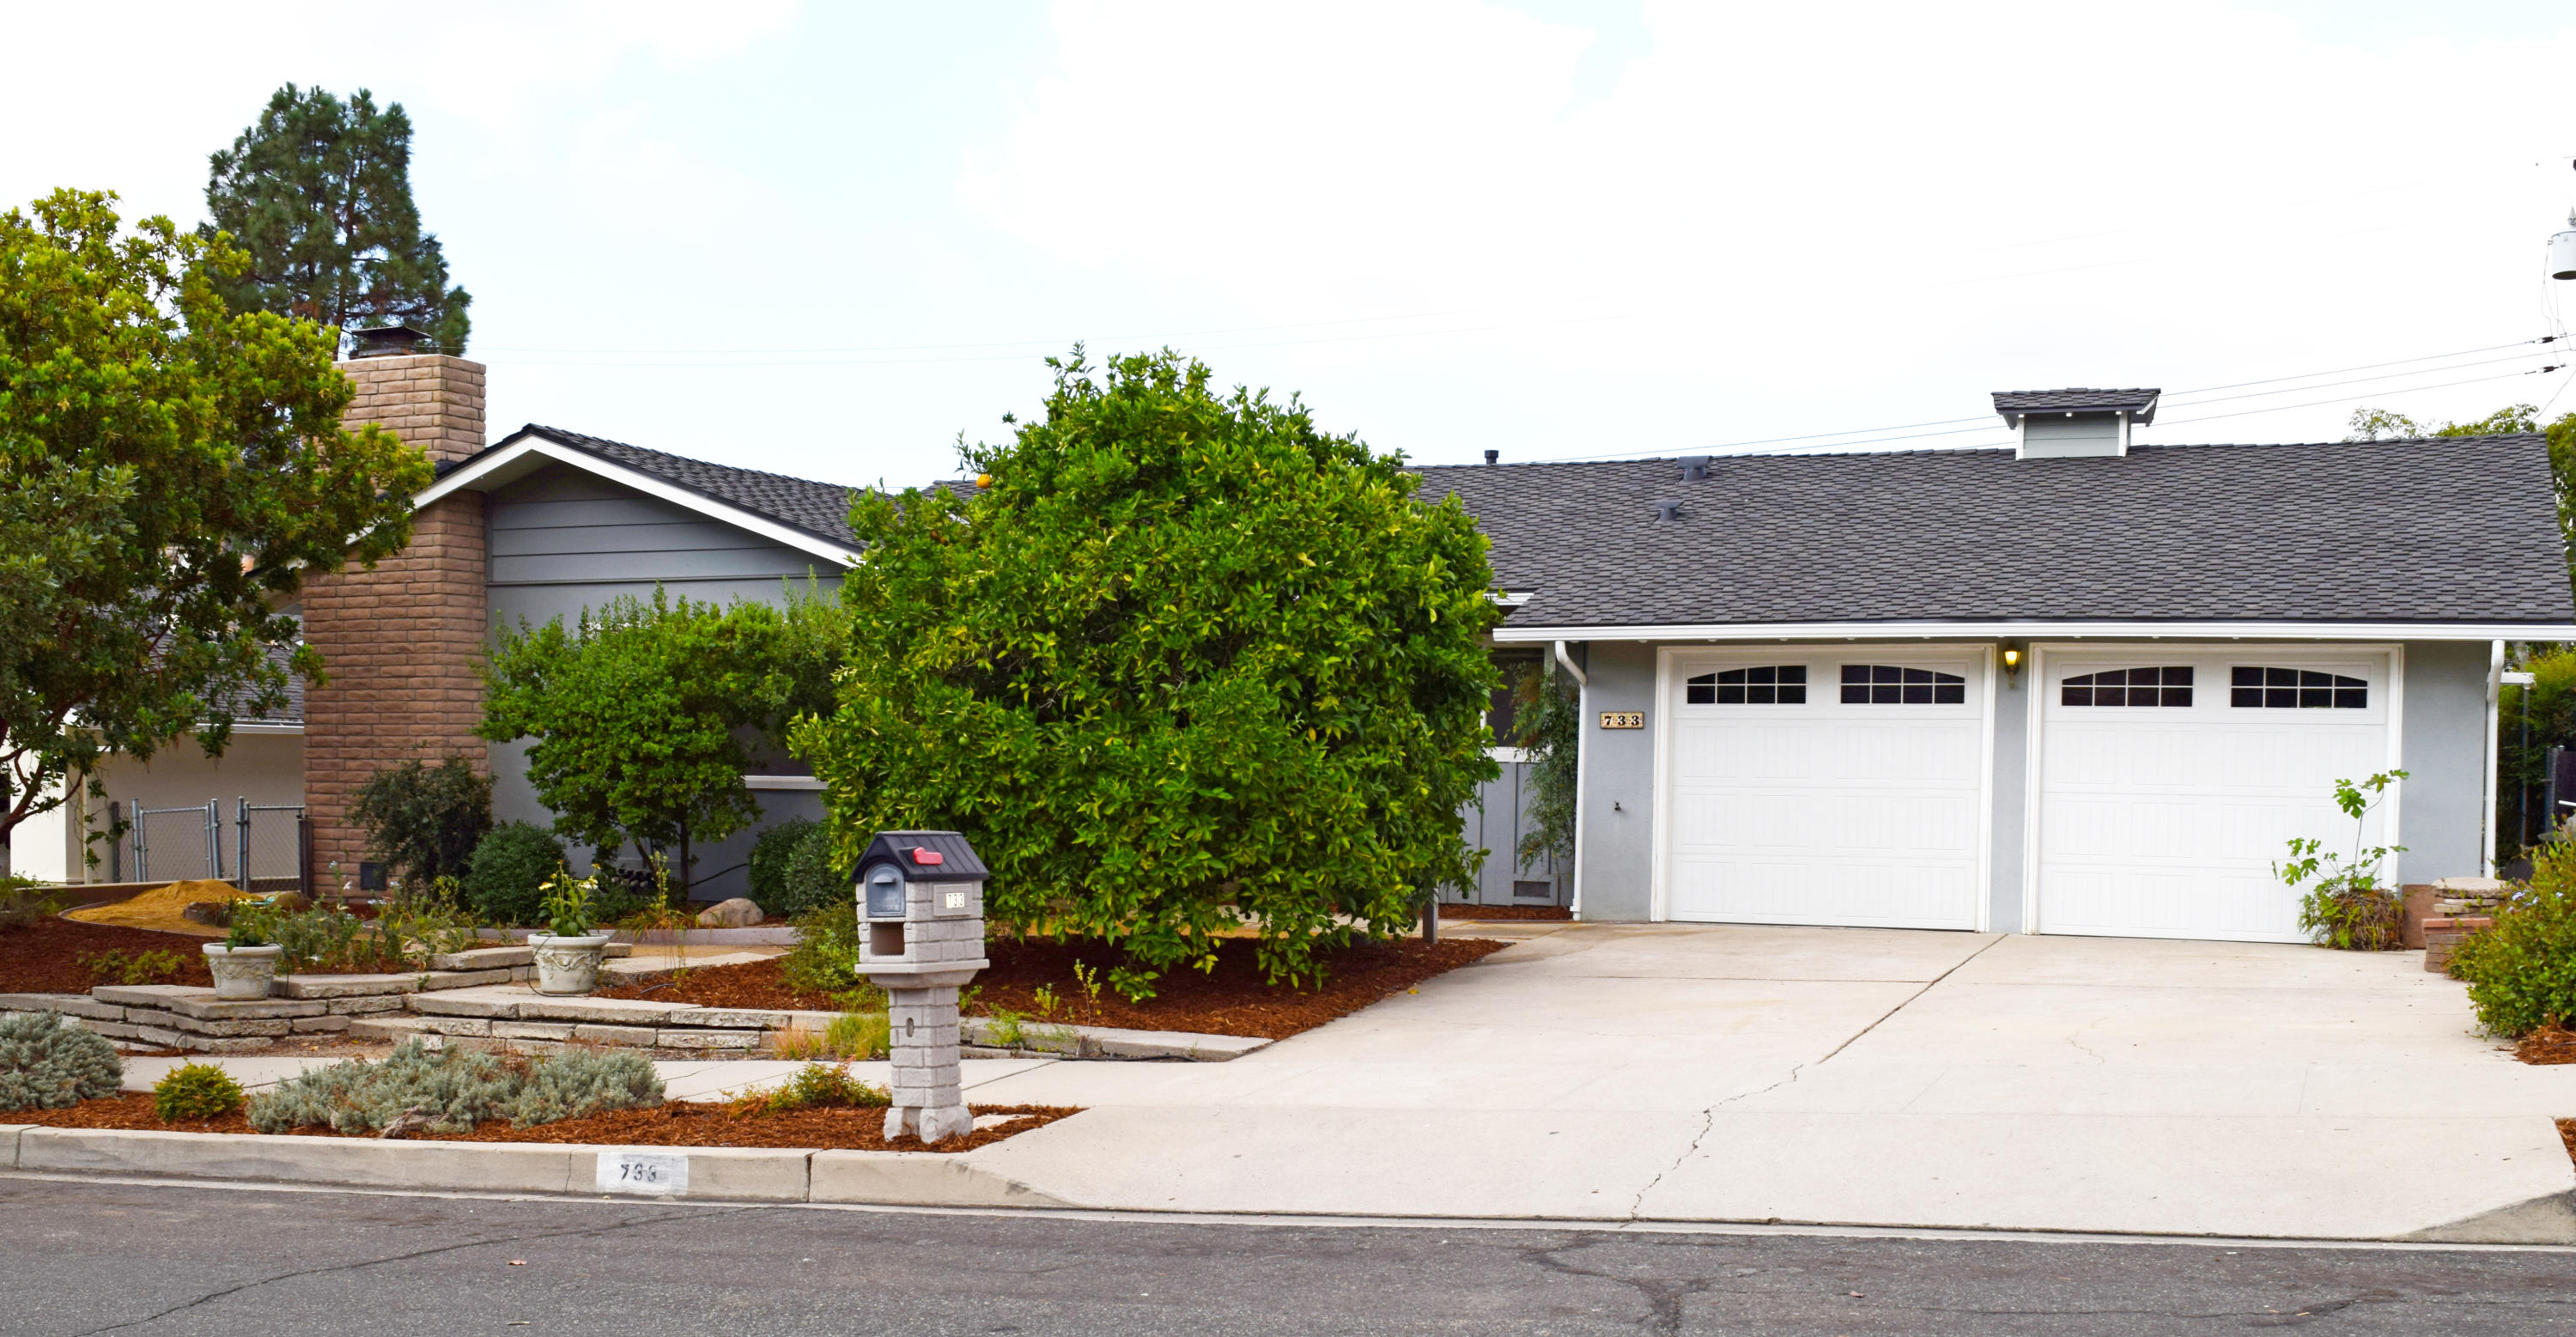 Property photo for 733 Grove Ln Santa Barbara, California 93105 - 15-2990